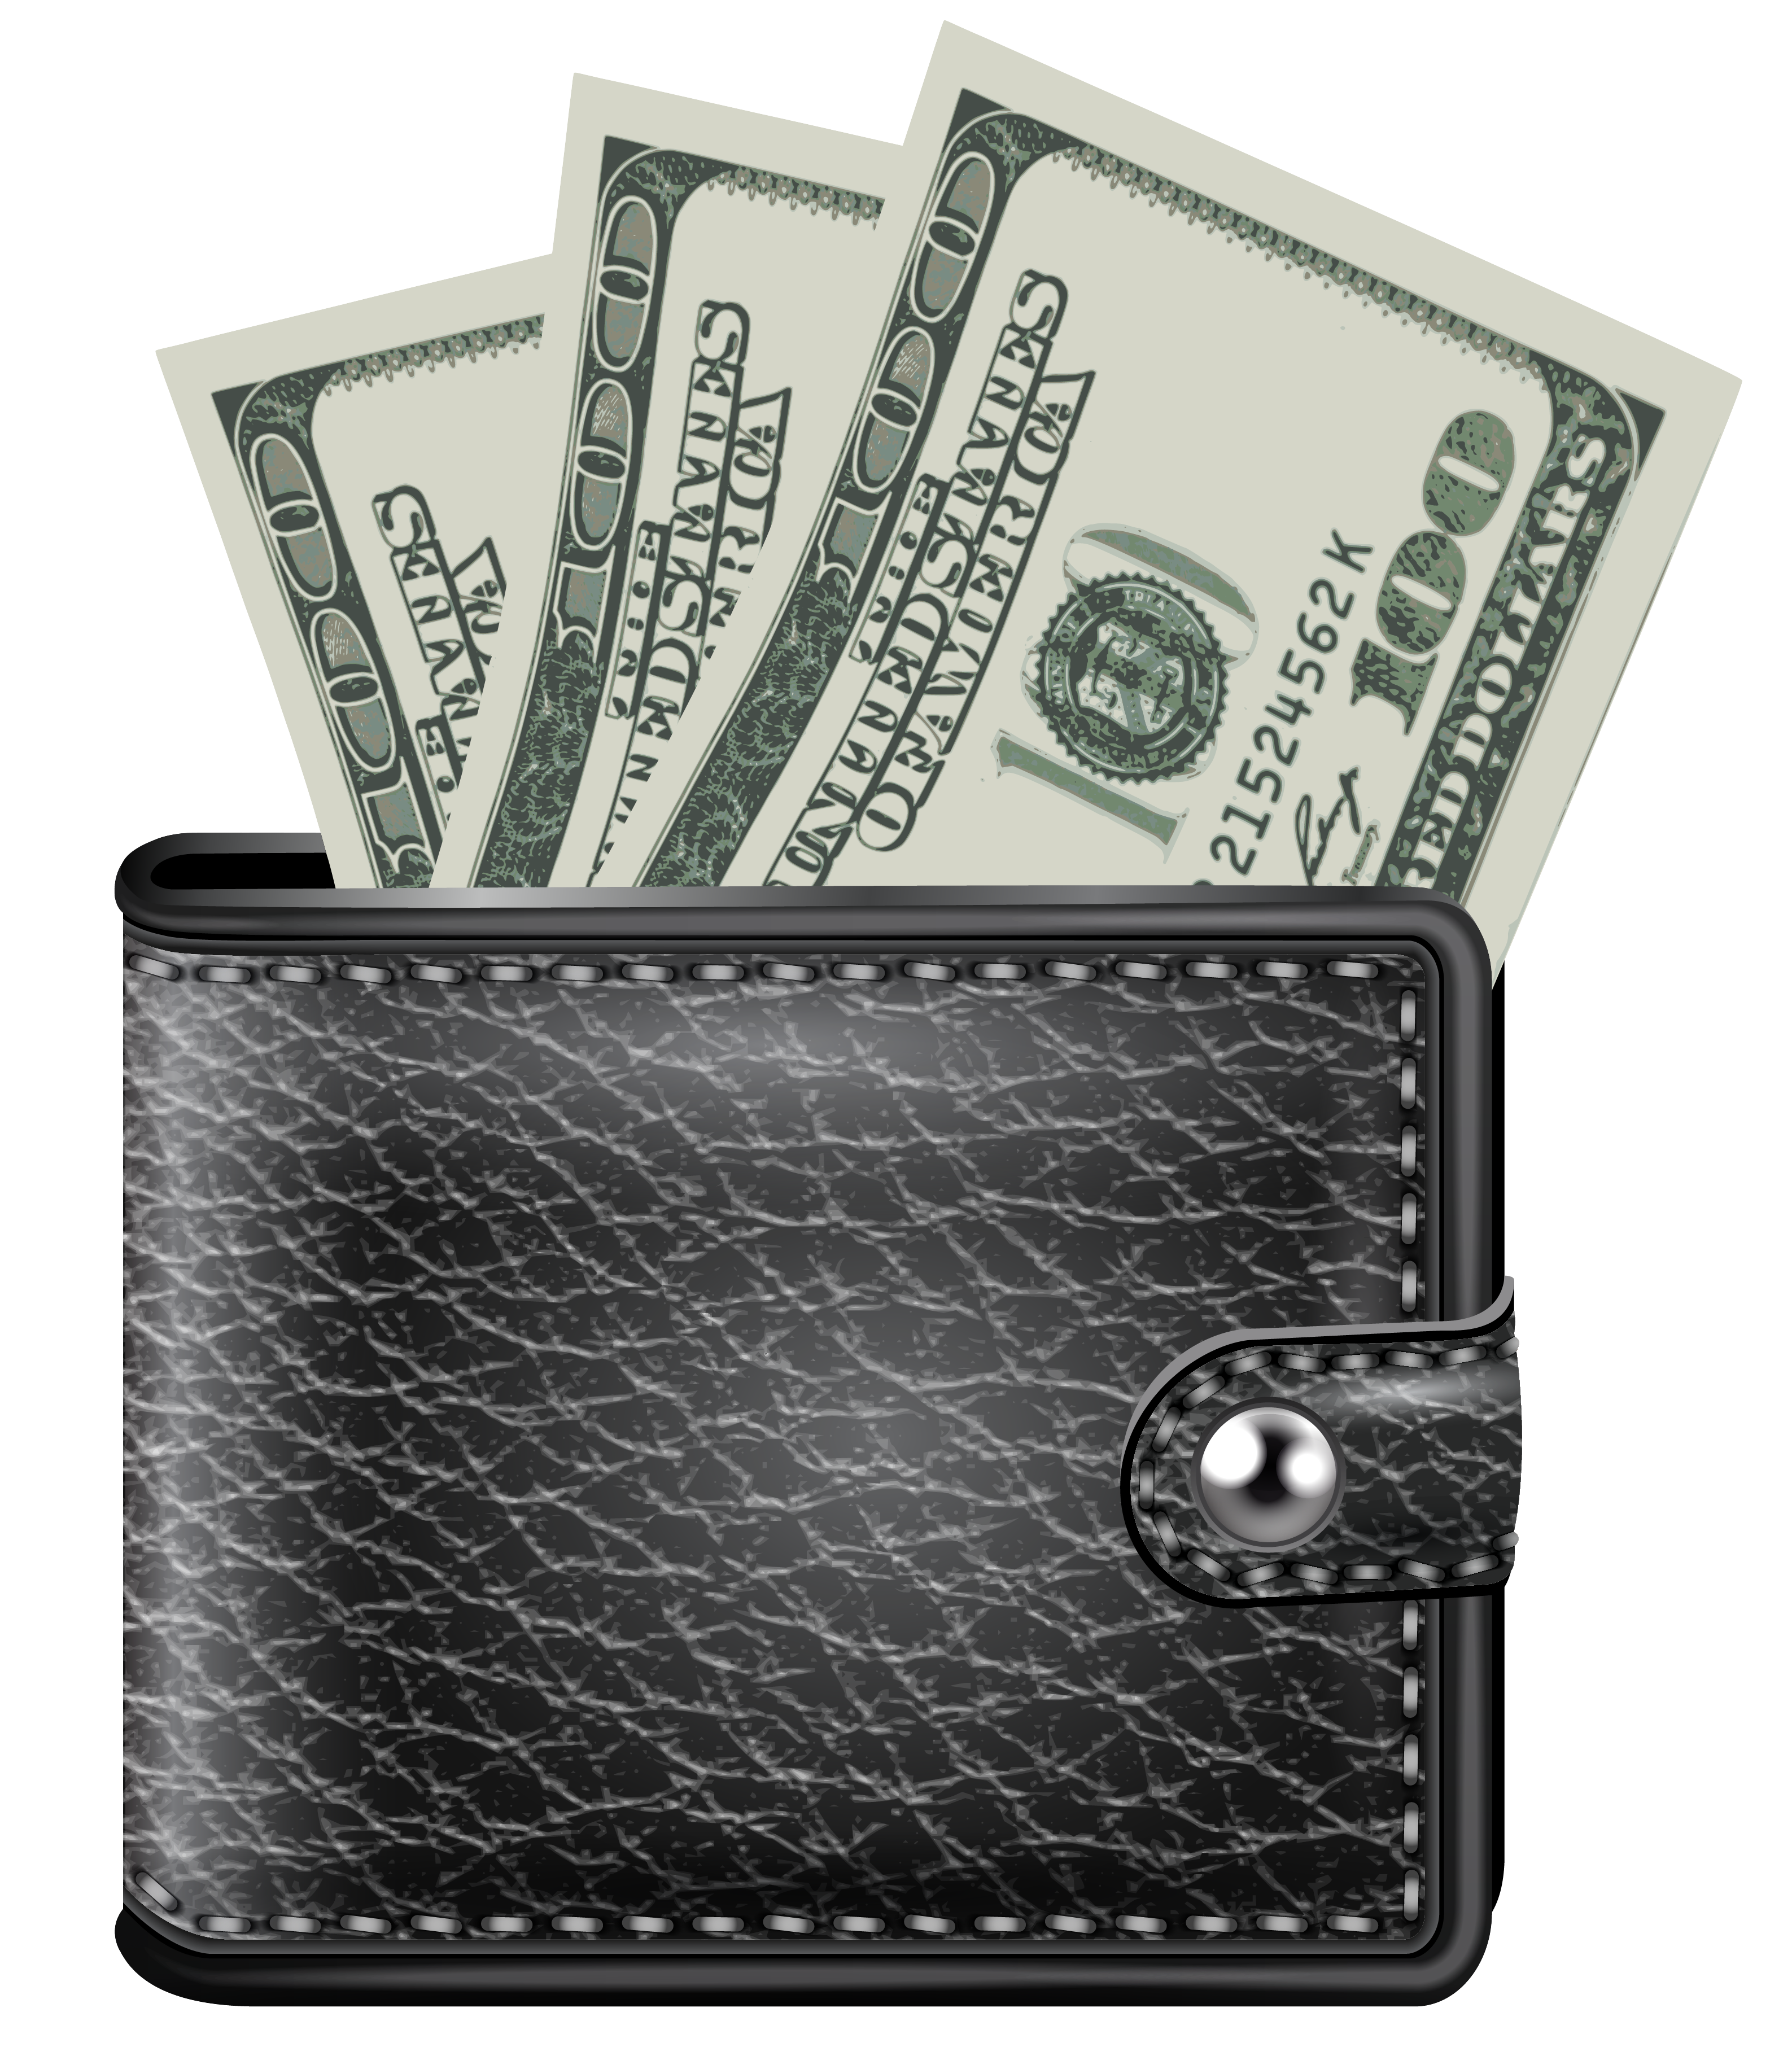 Transparent Money Png Background image #22625